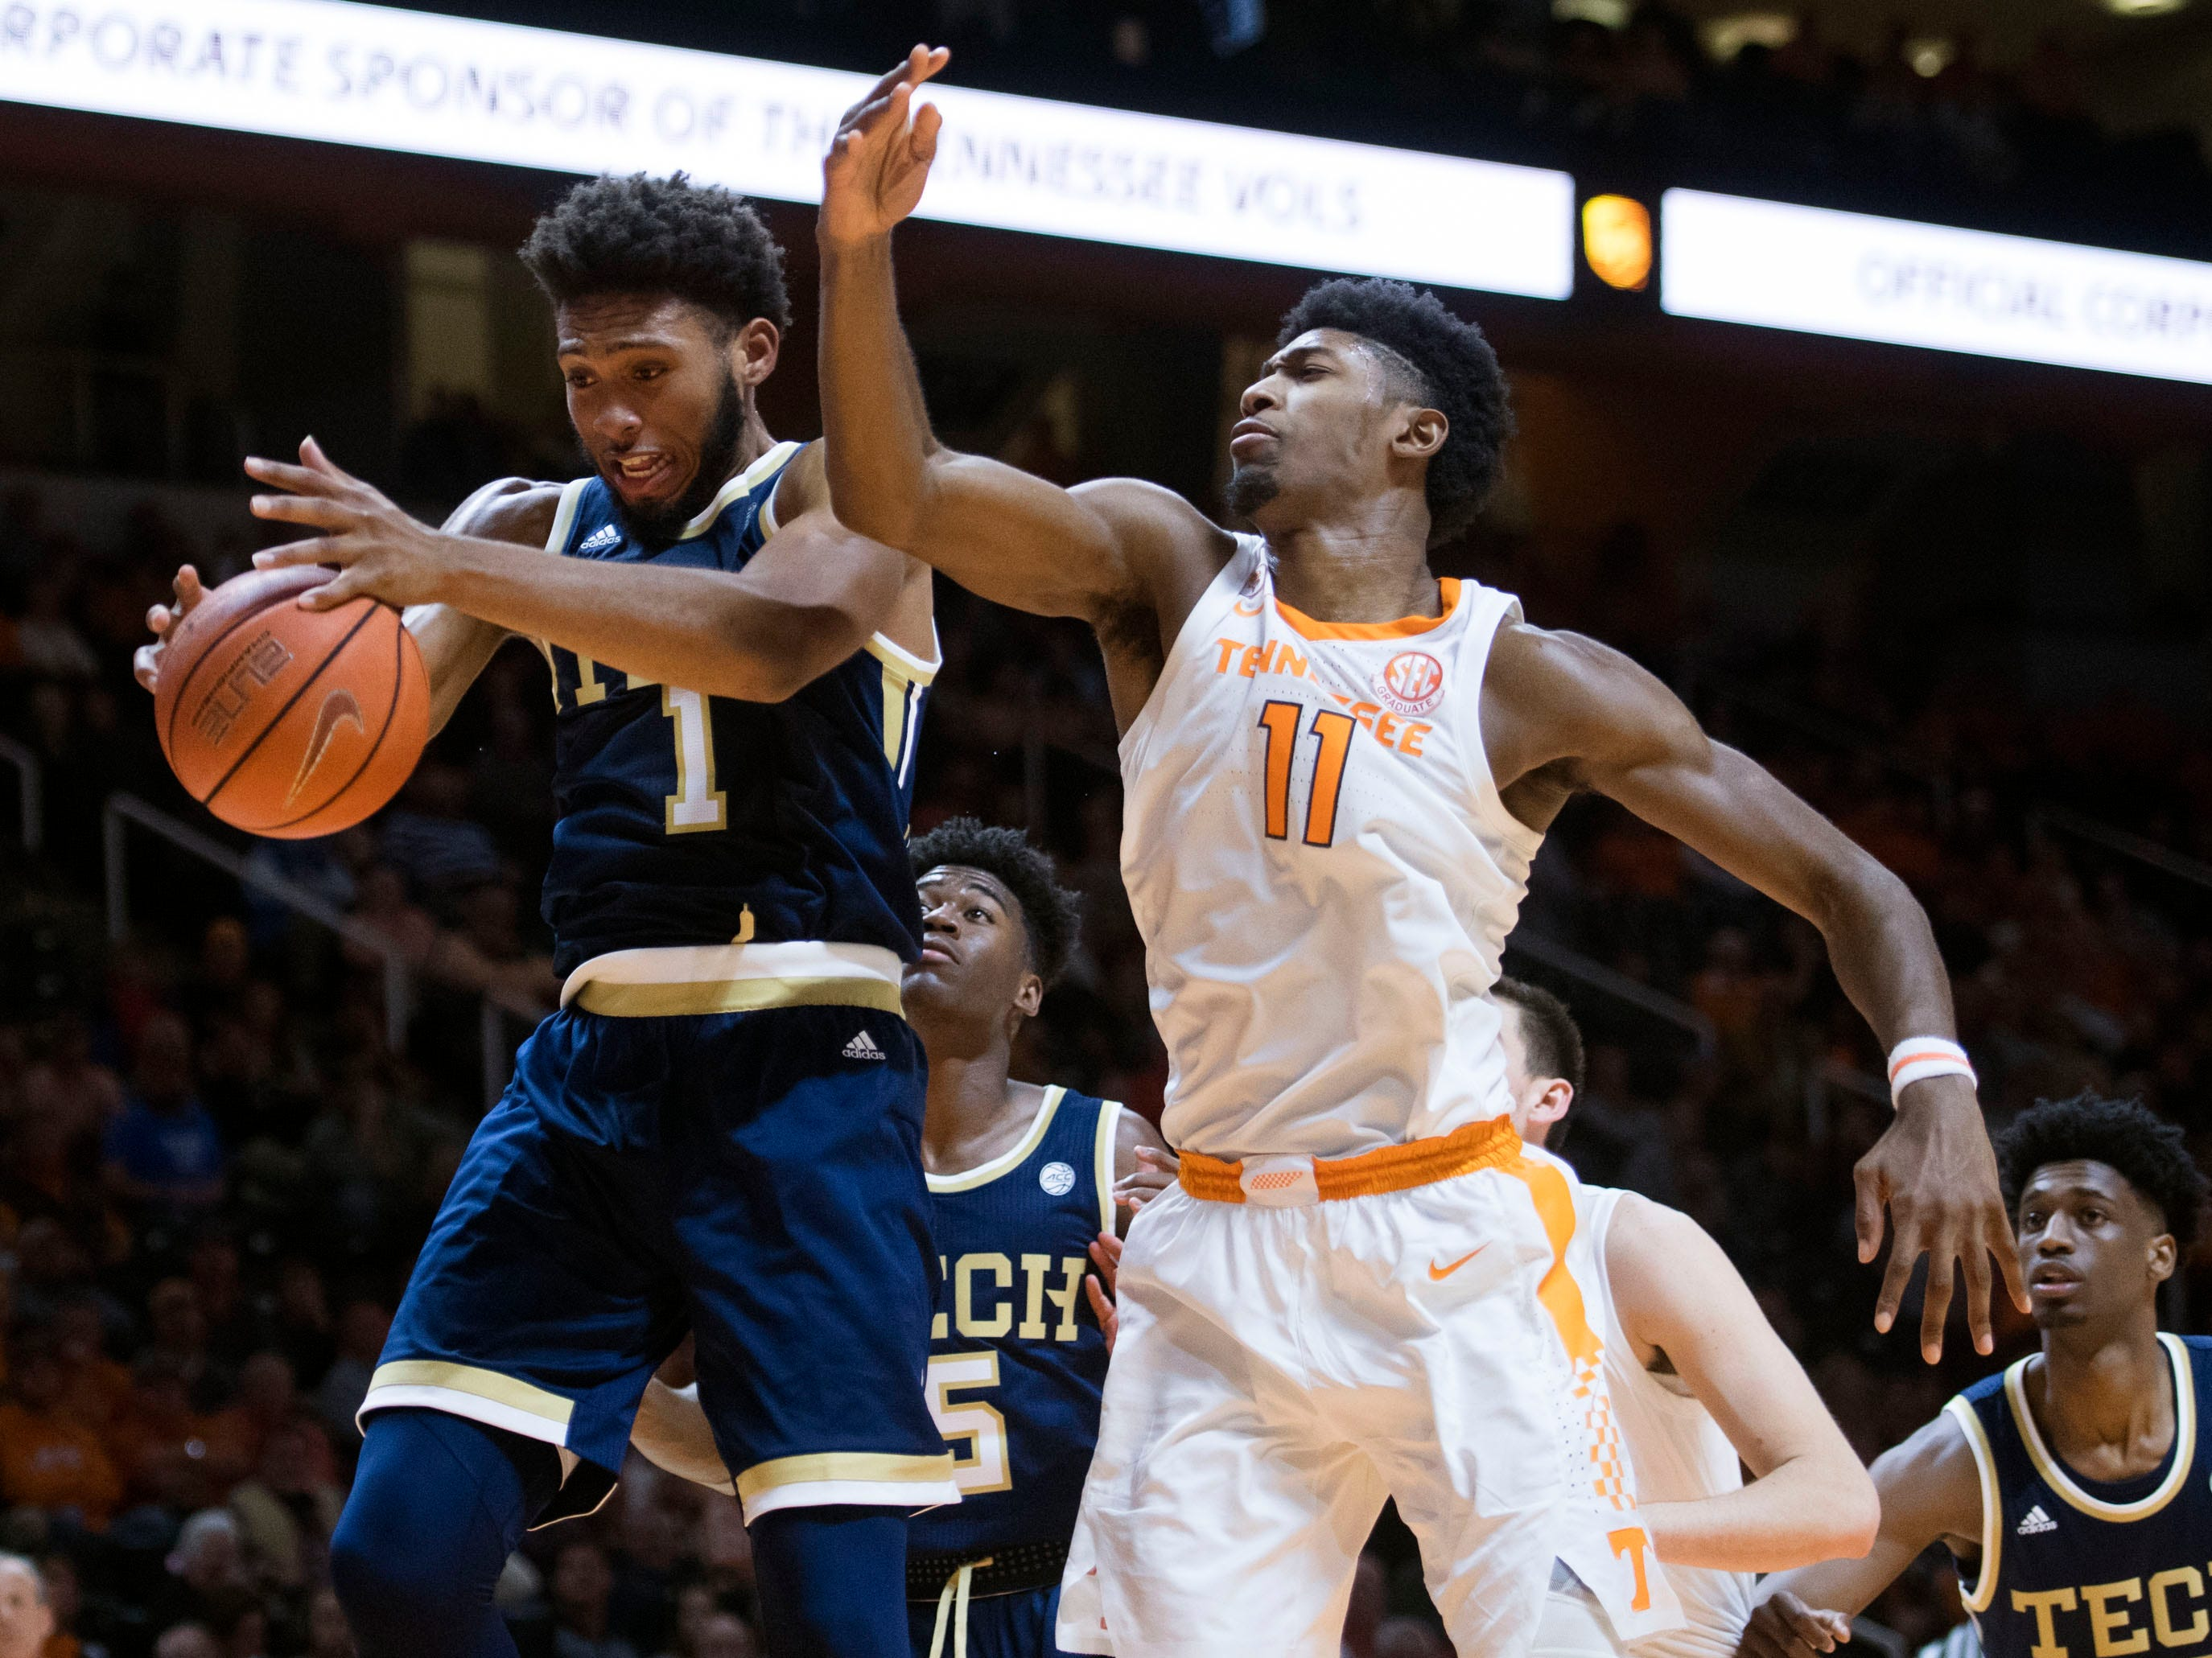 Tennessee's Kyle Alexander (11) tries to get the rebound with Georgia Tech's James Banks III (1) on Wednesday, November 14, 2018.